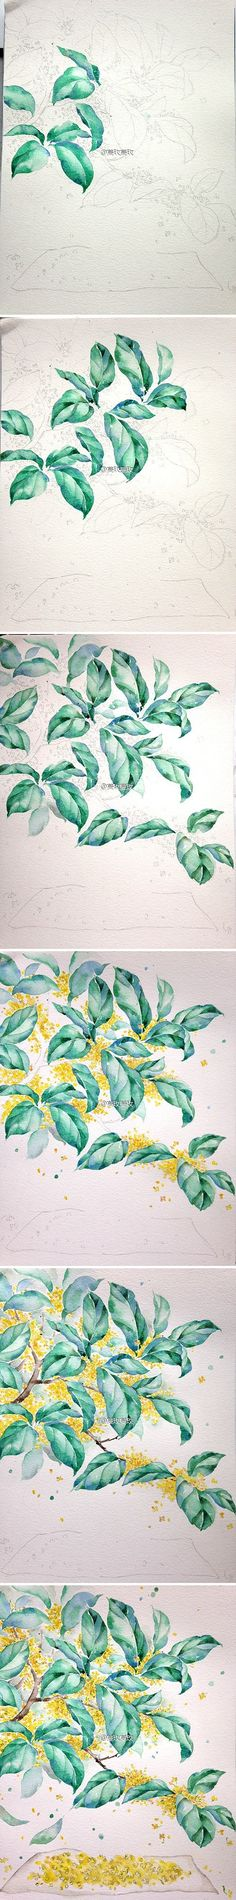 20 Delicate Colorful Watercolor Flower Painting Tutorials In Images-HOMESTHETICS (5)